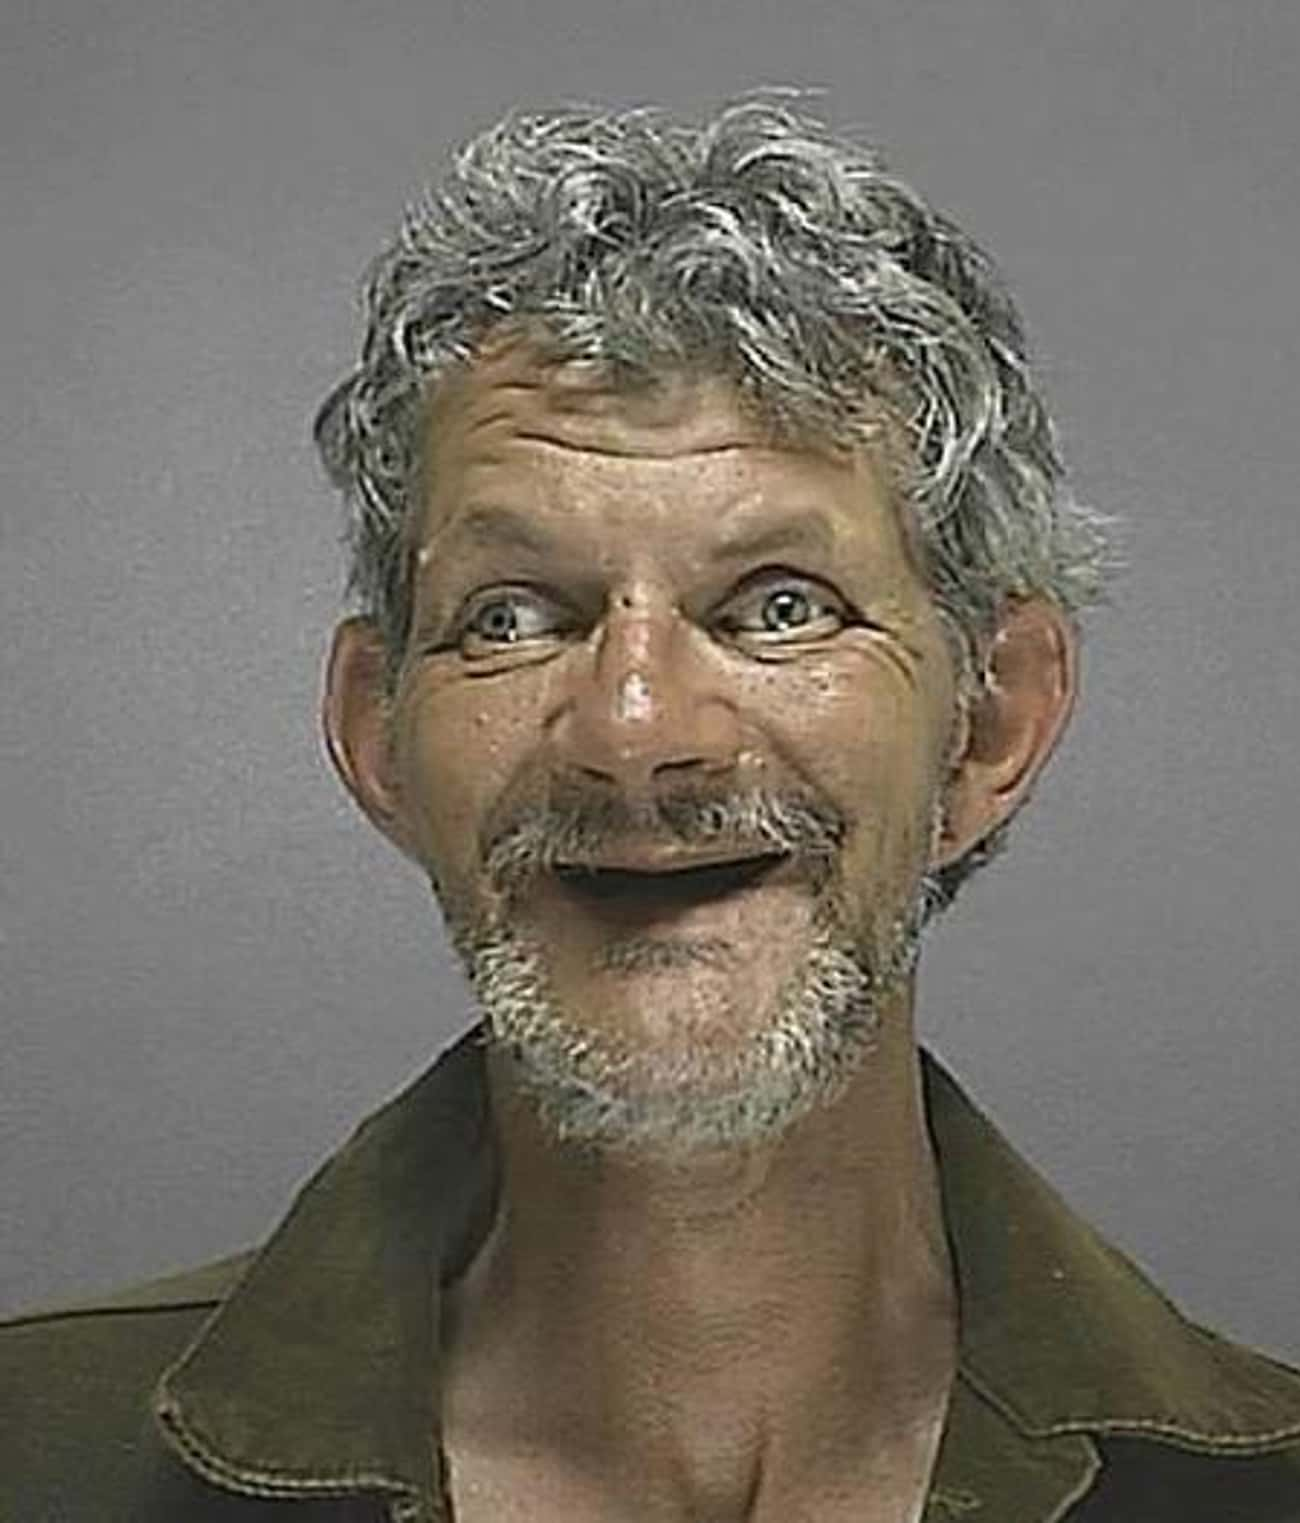 Happy To Be In The Sunshine St is listed (or ranked) 4 on the list 28 Hilarious Florida Mugshots